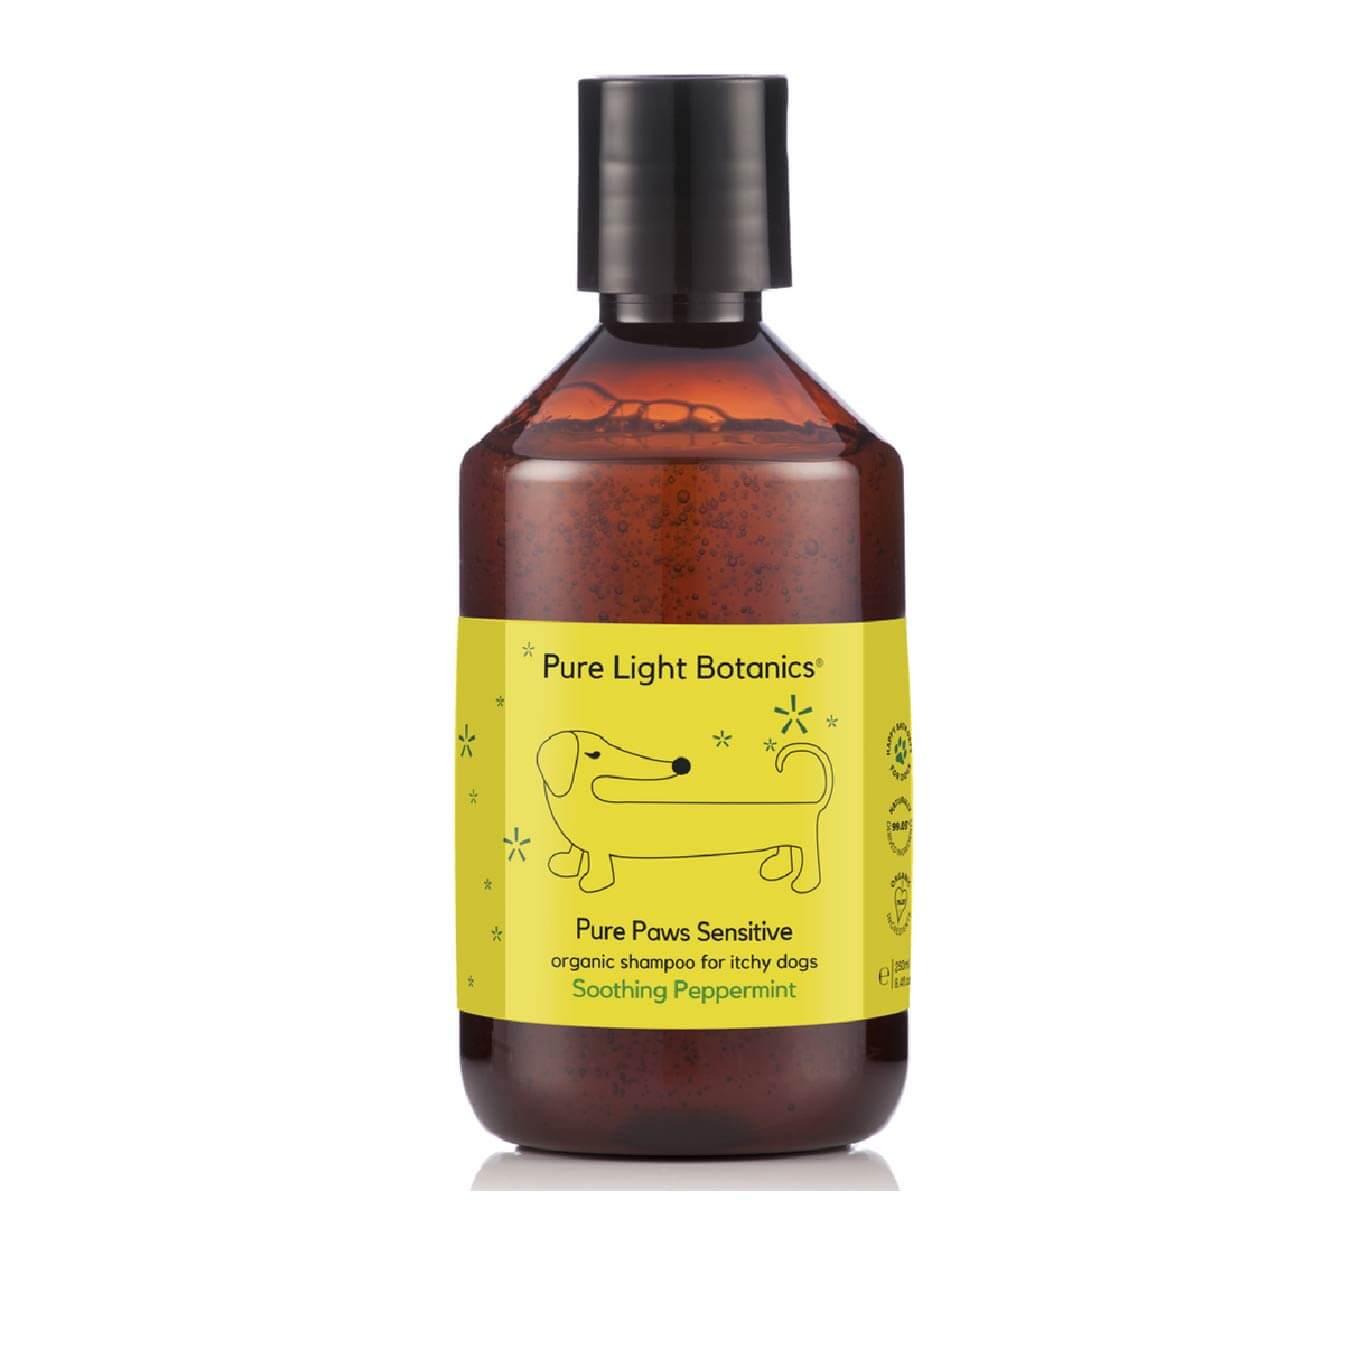 Pure Light Botanics Itchy Skin Peppermint Organic Dog Shampoo - Dogs, Flea&Tick, Grooming Essentials, Hot Spots, Latte, Paw Licking, Pure Light Botanics, Skin, Yeast - Shop Vanillapup - Online Pet Shop